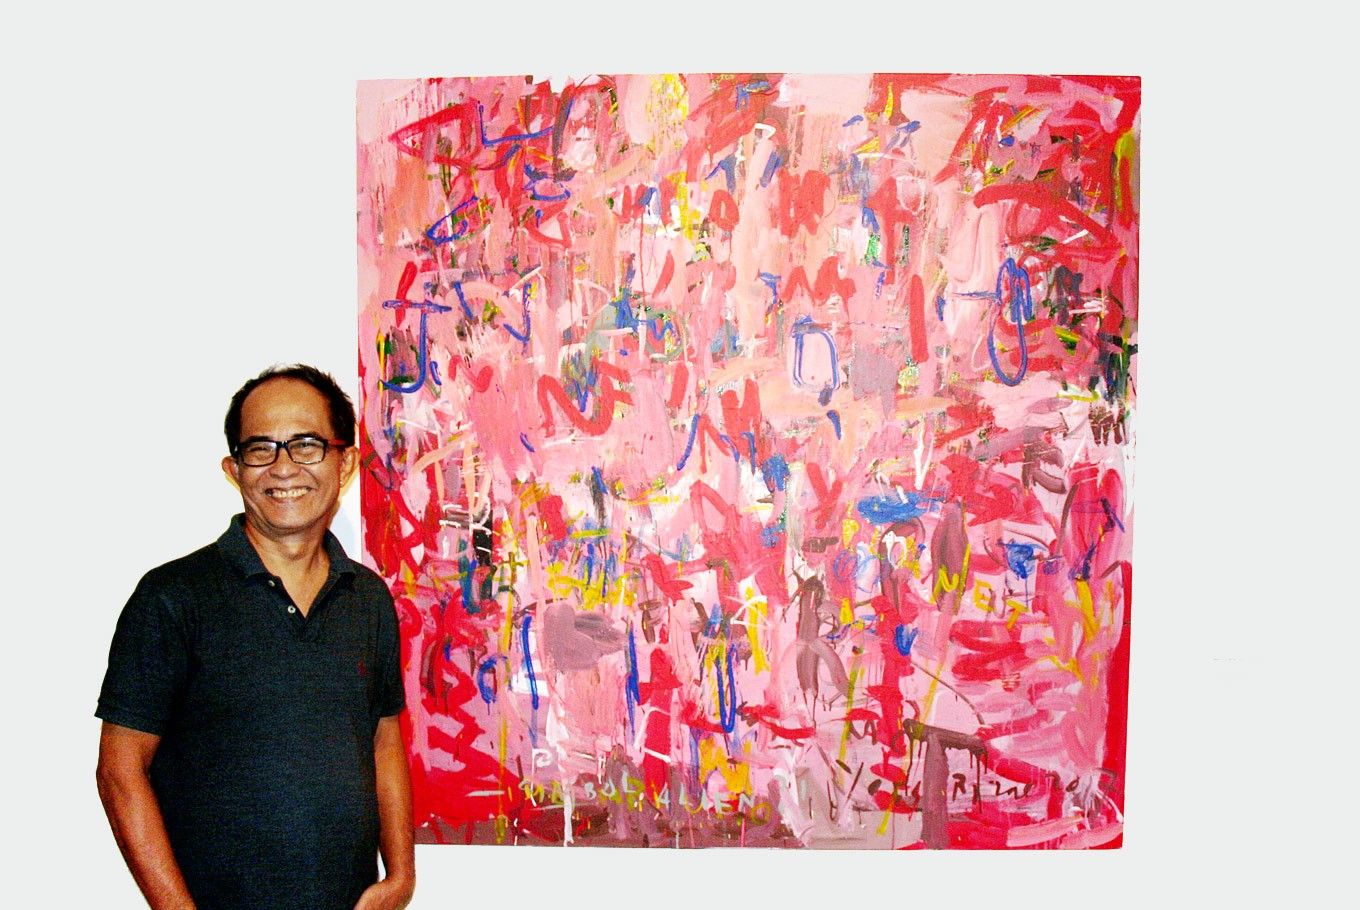 Yoes Rizal: Keeping art as art and nothing more